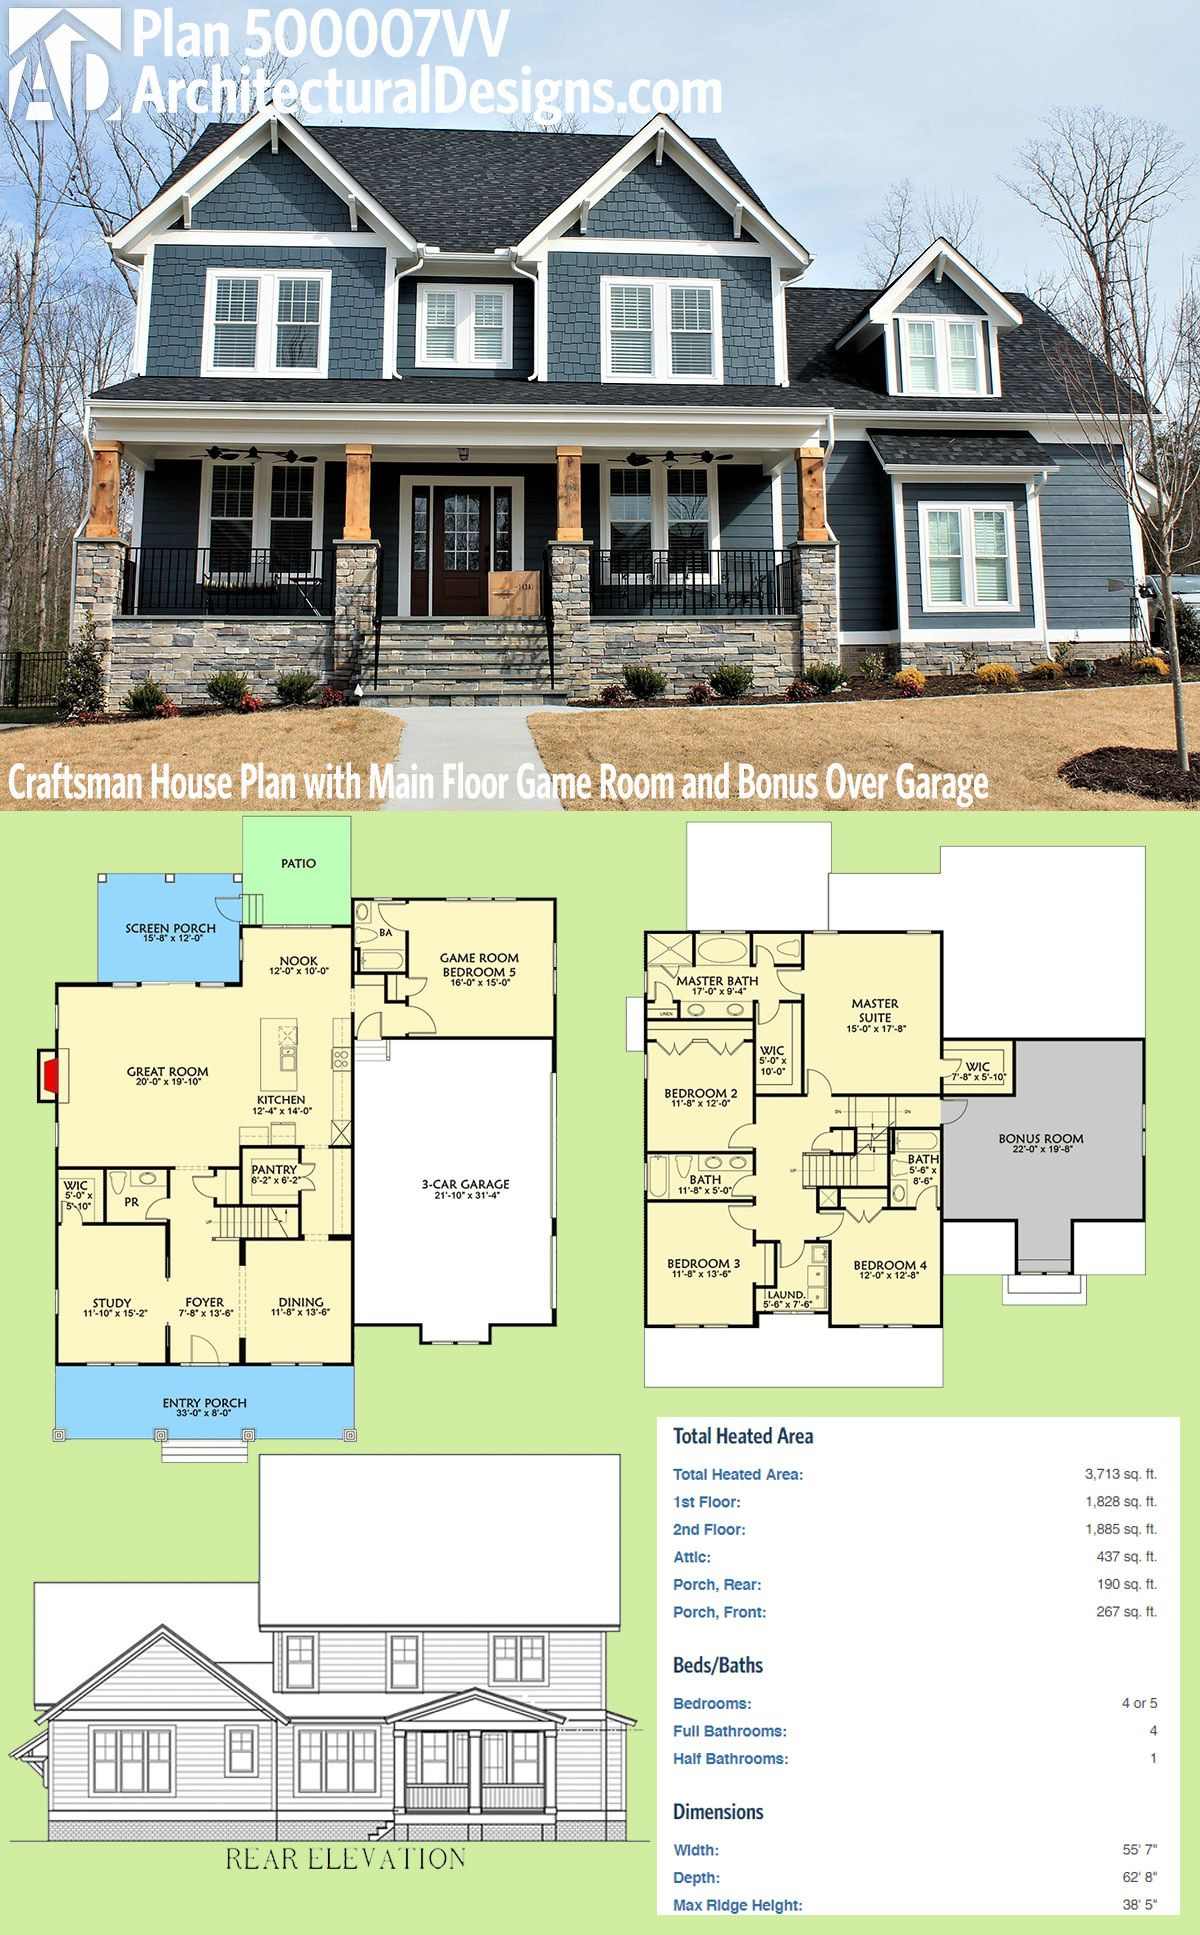 Plan 500007vv craftsman house plan with main floor game room and bonus over garage craftsman Home design layout ideas